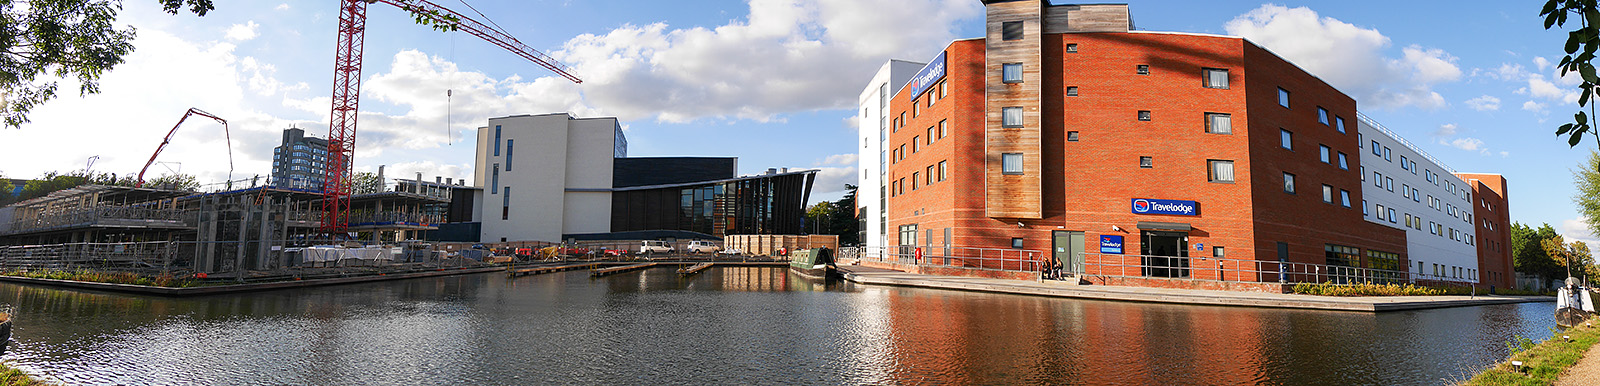 Panorama of the Aylesbury basin.